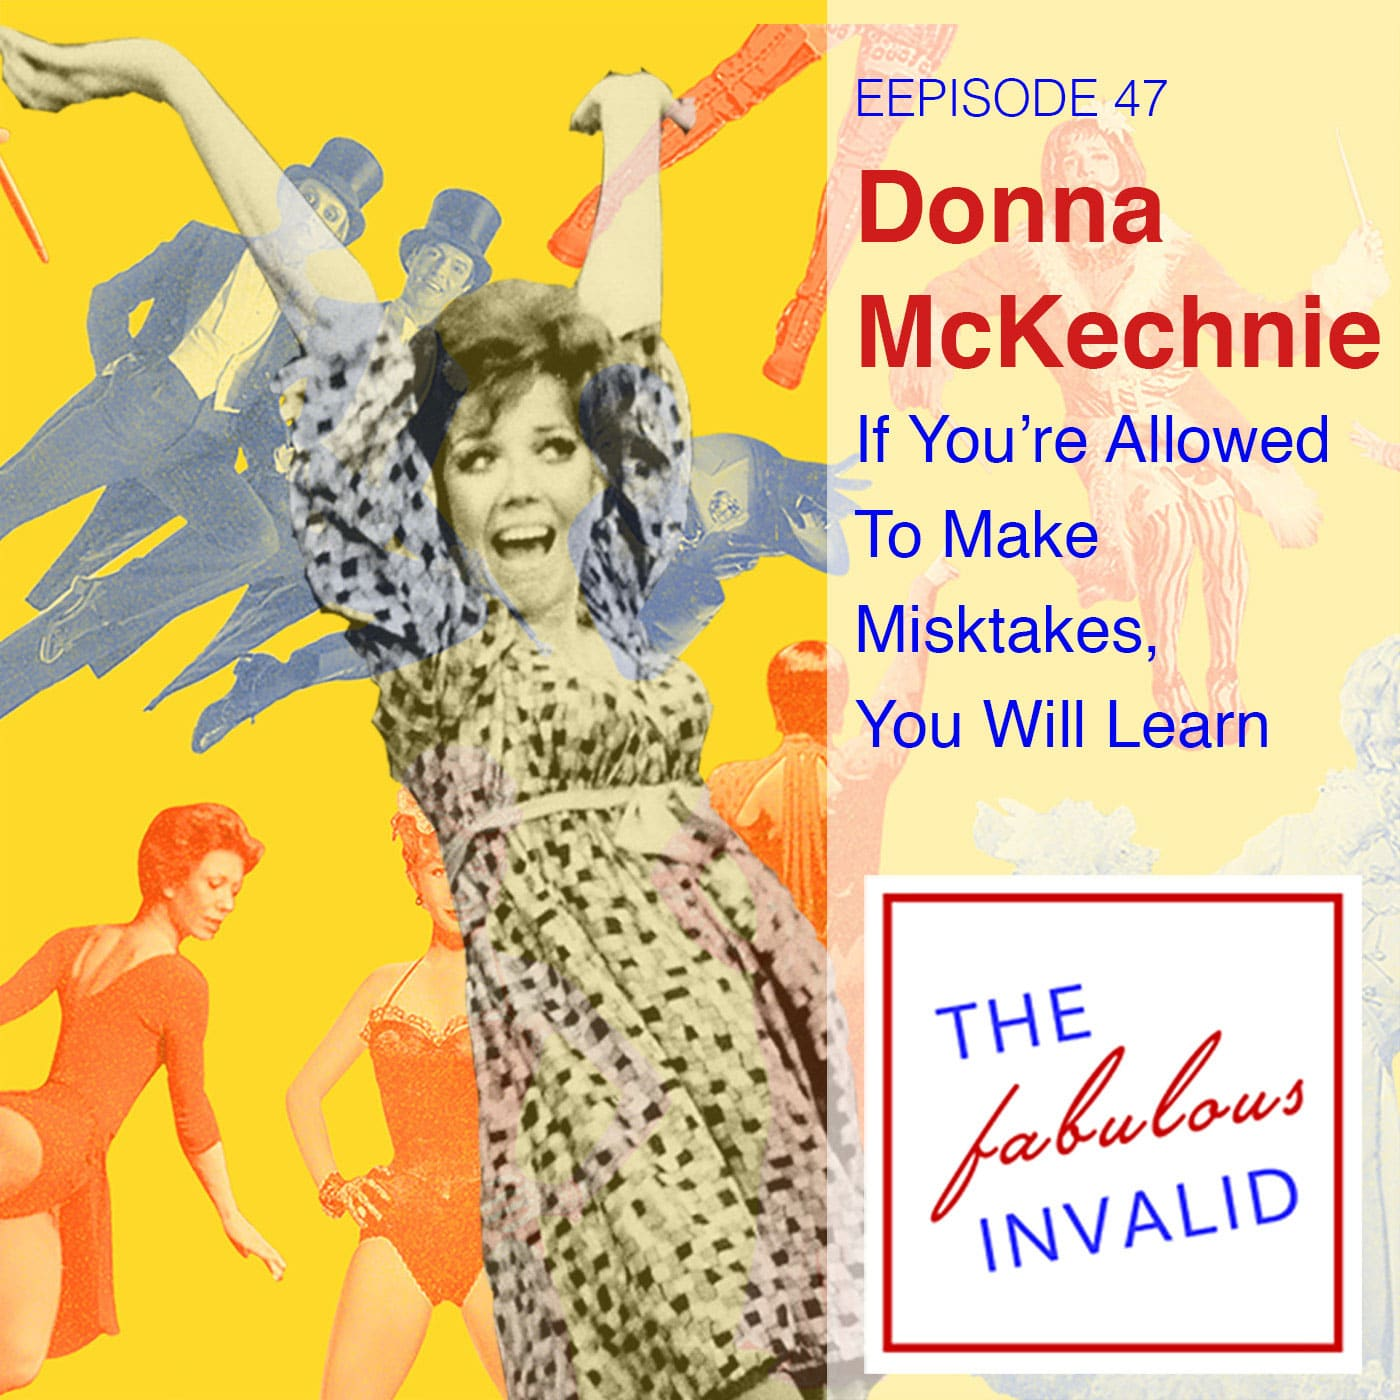 The Fabulous Invalid Episode 47 Guest Donna McKechnie